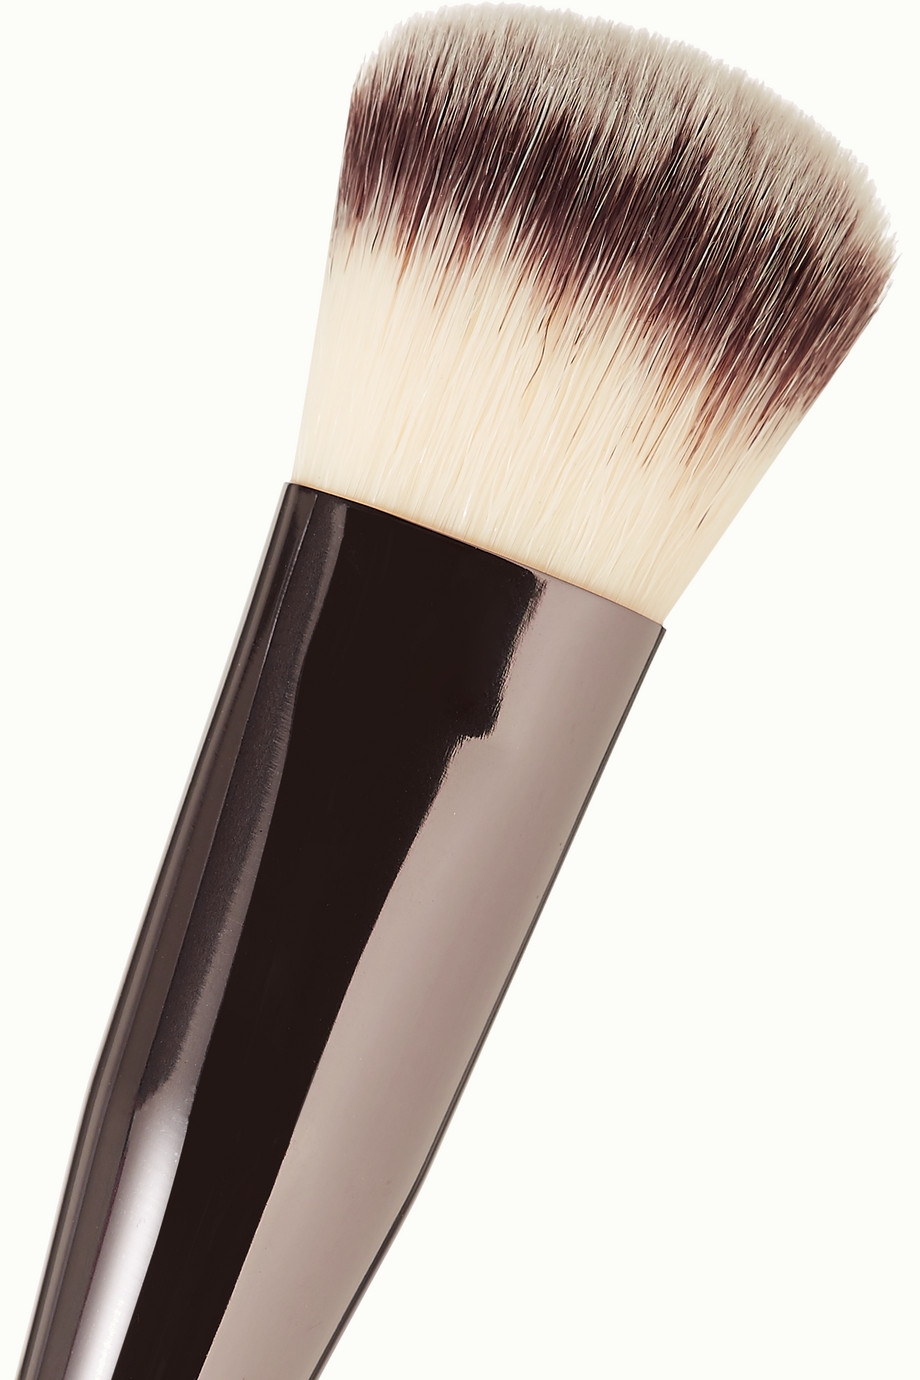 Chantecaille Foundation and Mask Brush – Pinsel